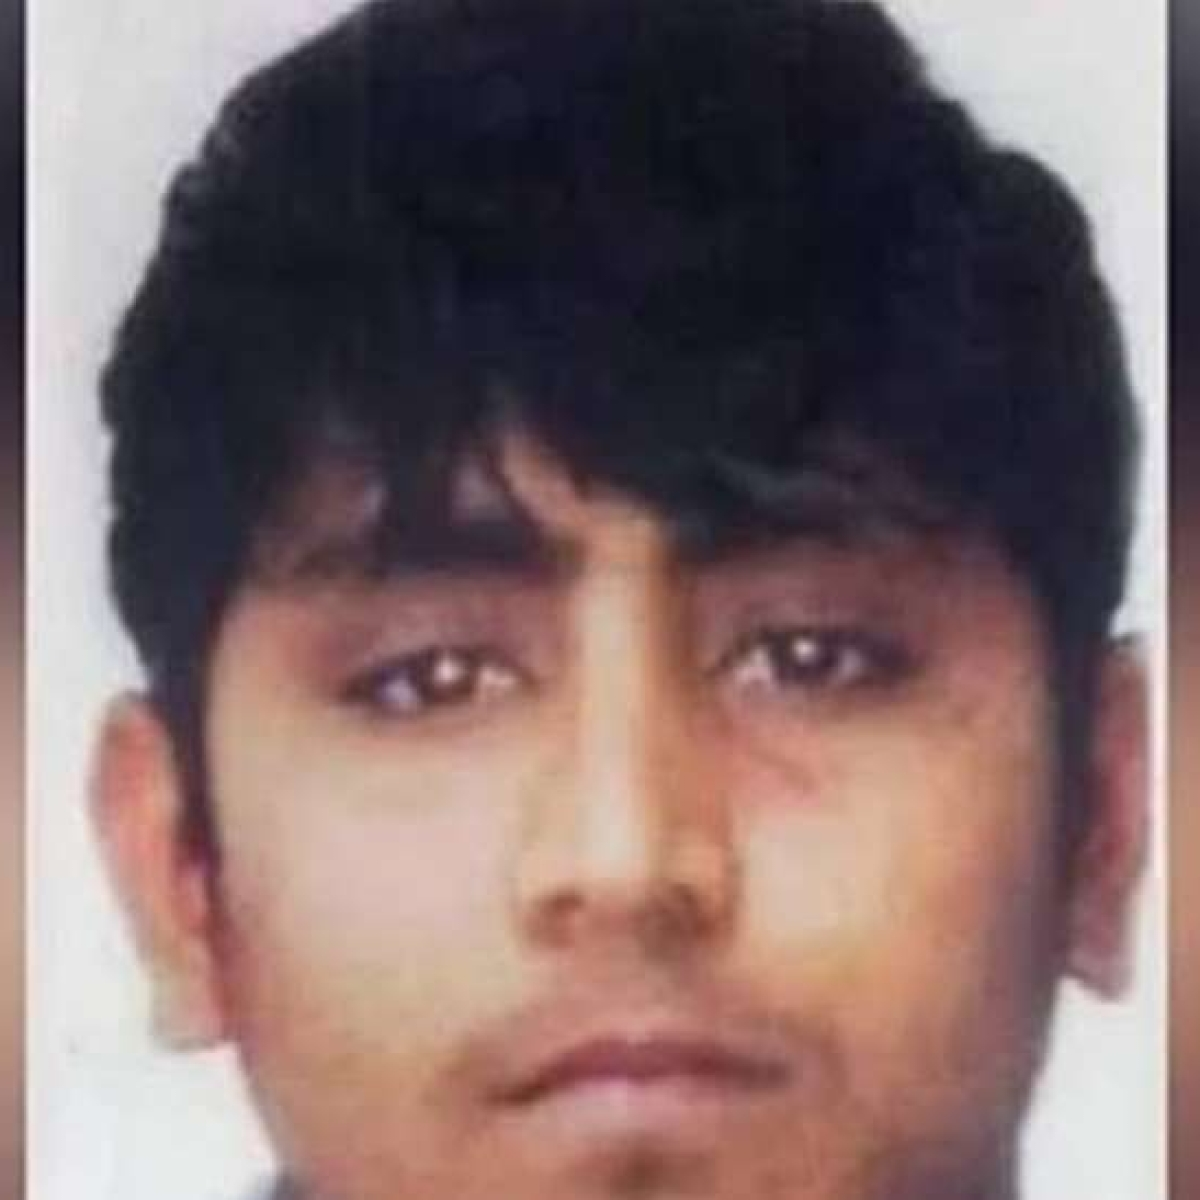 Pawan Gupta, one of the convicts in Nirbhaya case (Photo Courtesy: social media)